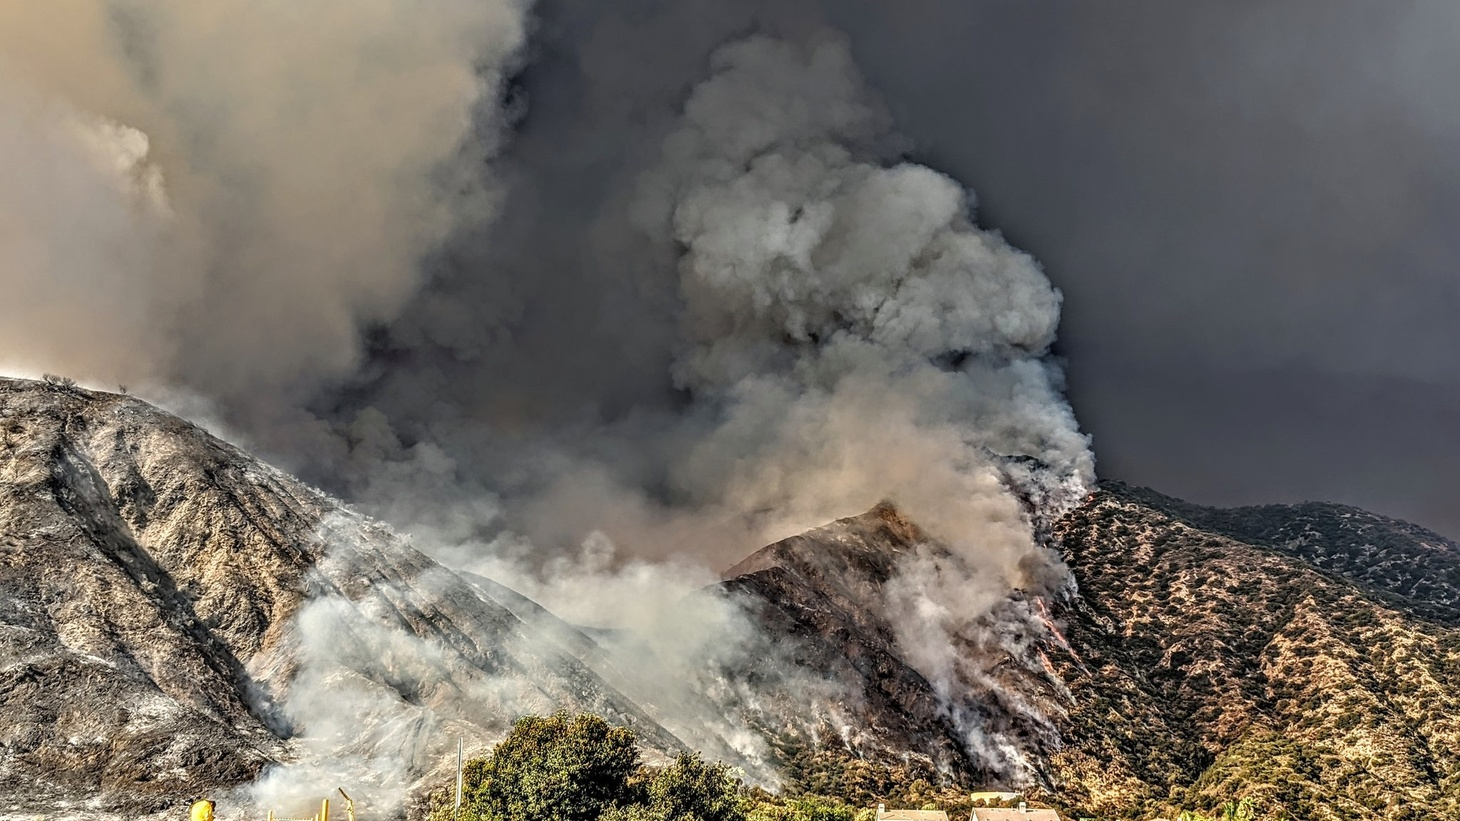 """More than 10,000 acres have burned due to a fire caused by a """"smoke-generating pyrotechnic device"""" used at a party on Saturday morning at El Dorado Ranch Park in Yucaipa, about 70 miles east of Los Angeles, Cal Fire investigators determined. 09/08/2020."""